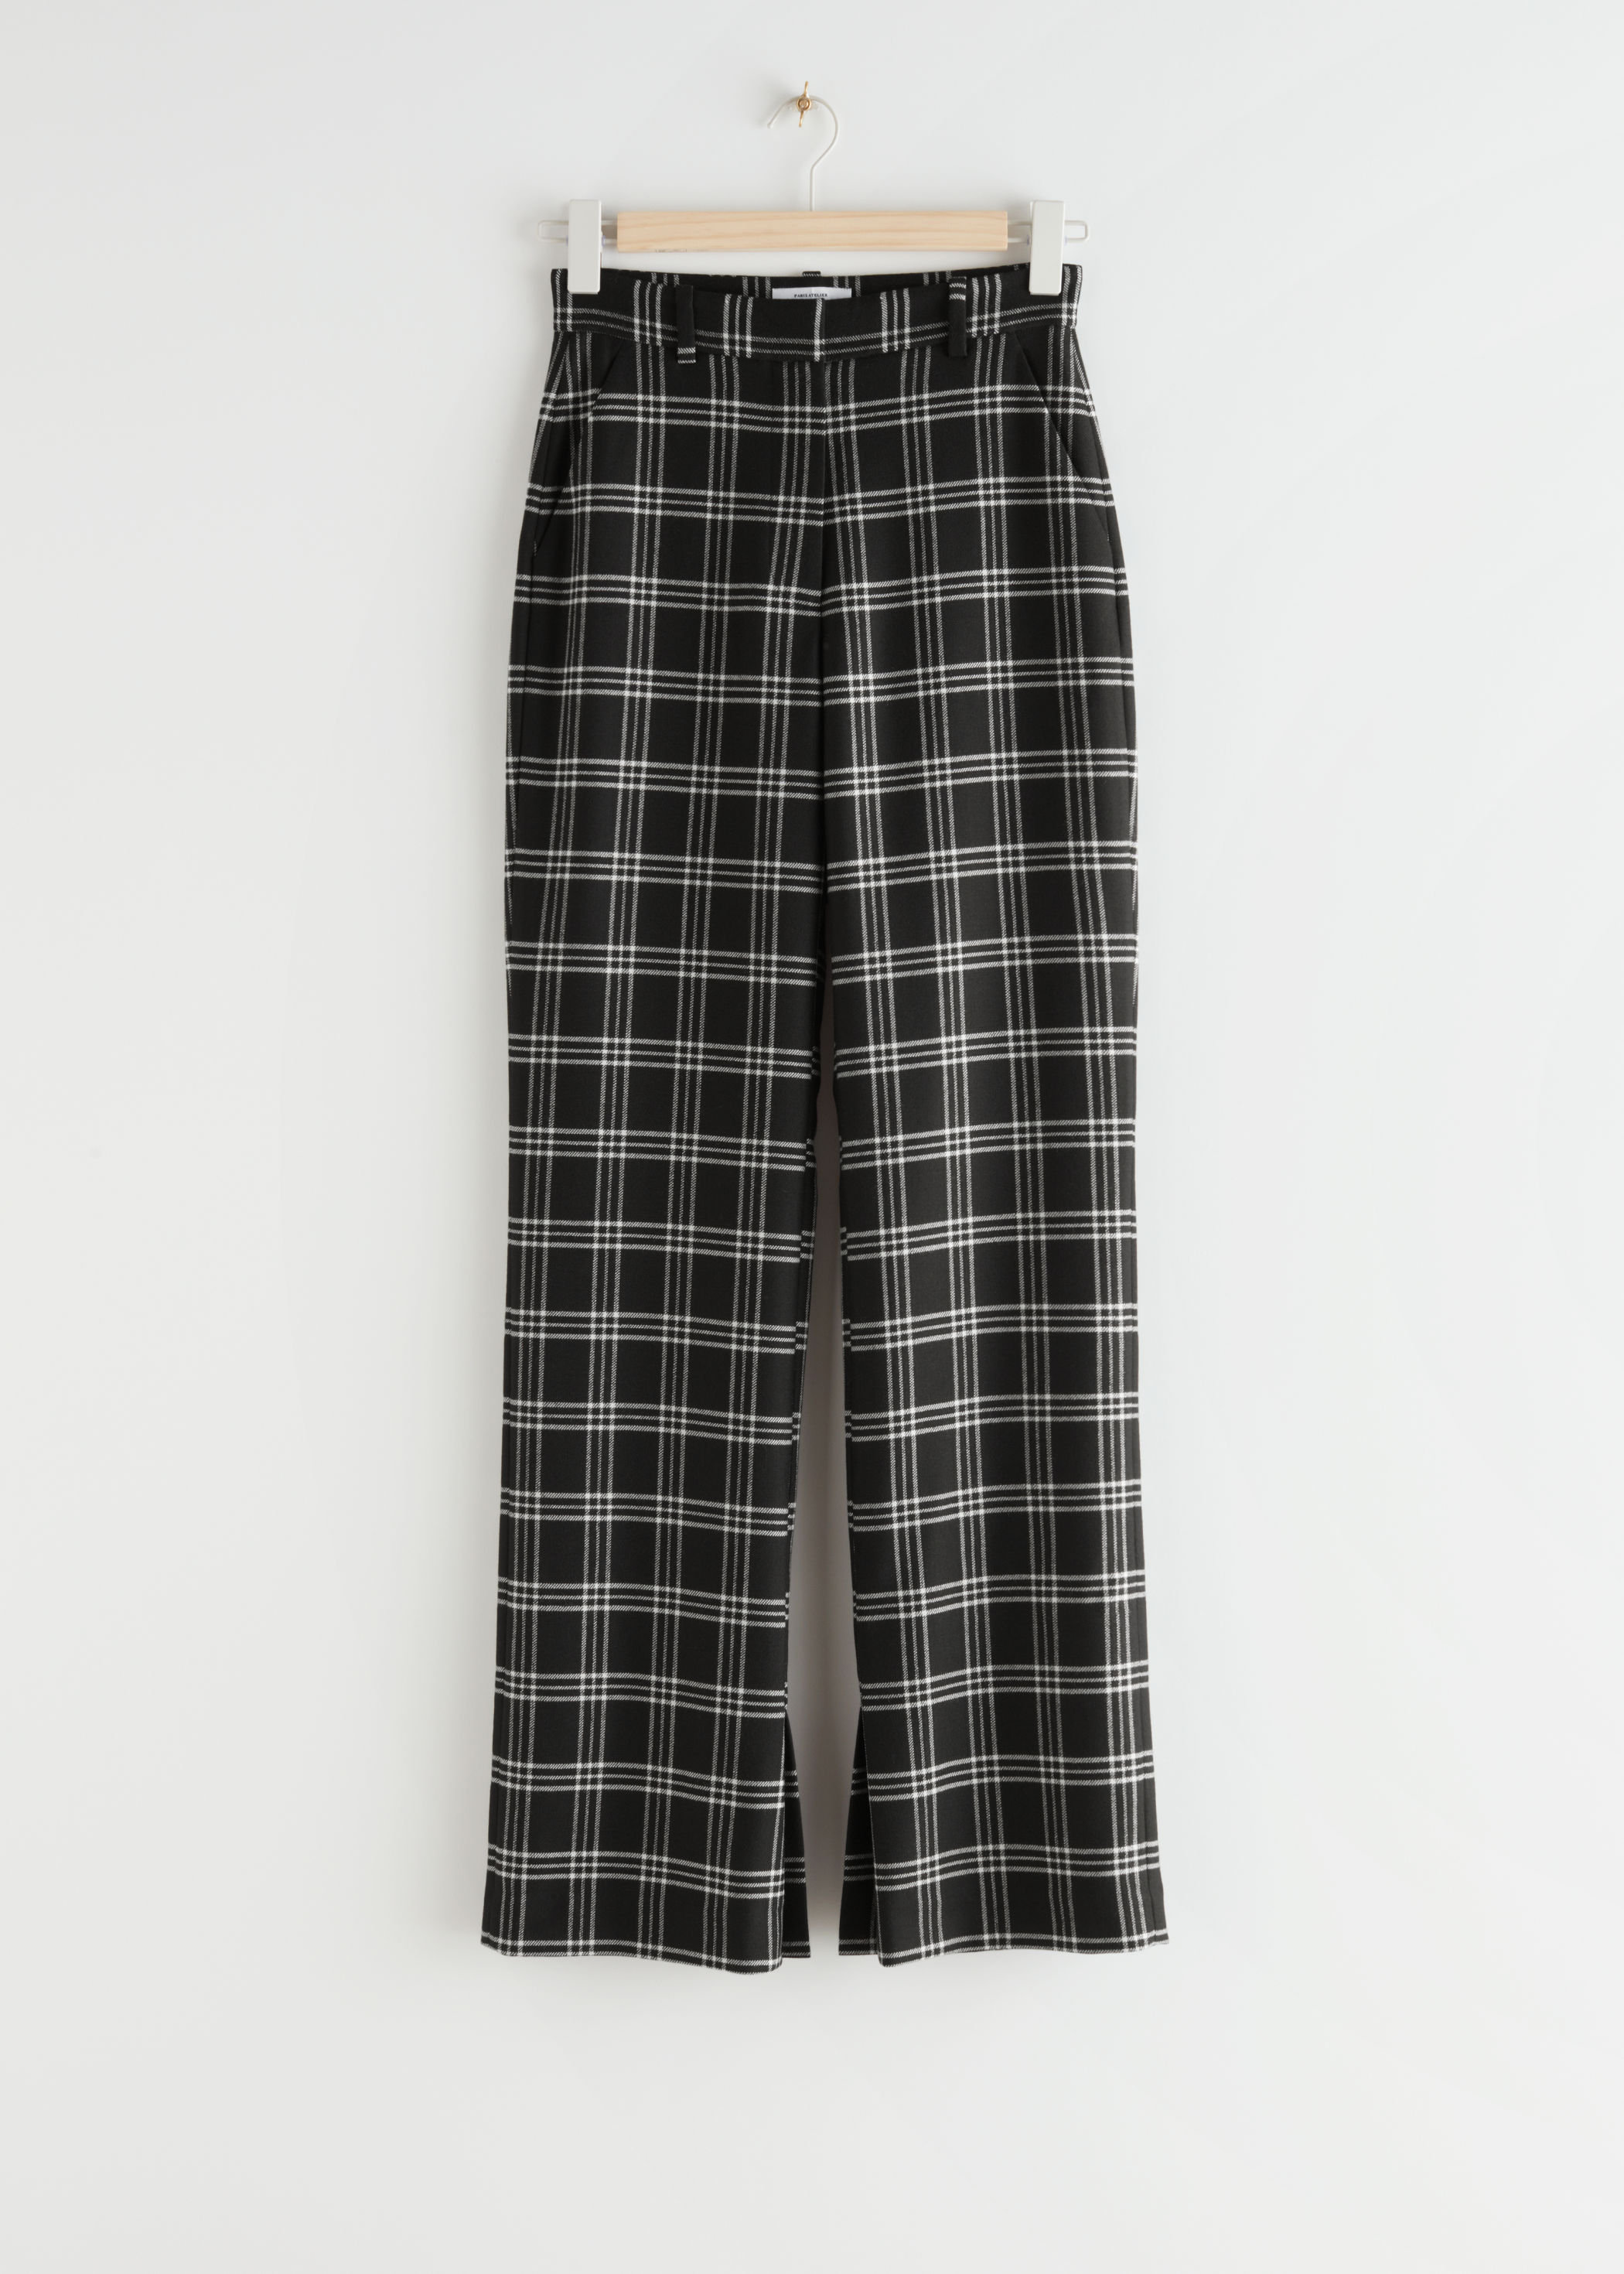 Flared High Waist Trousers, £85, & Other Stories